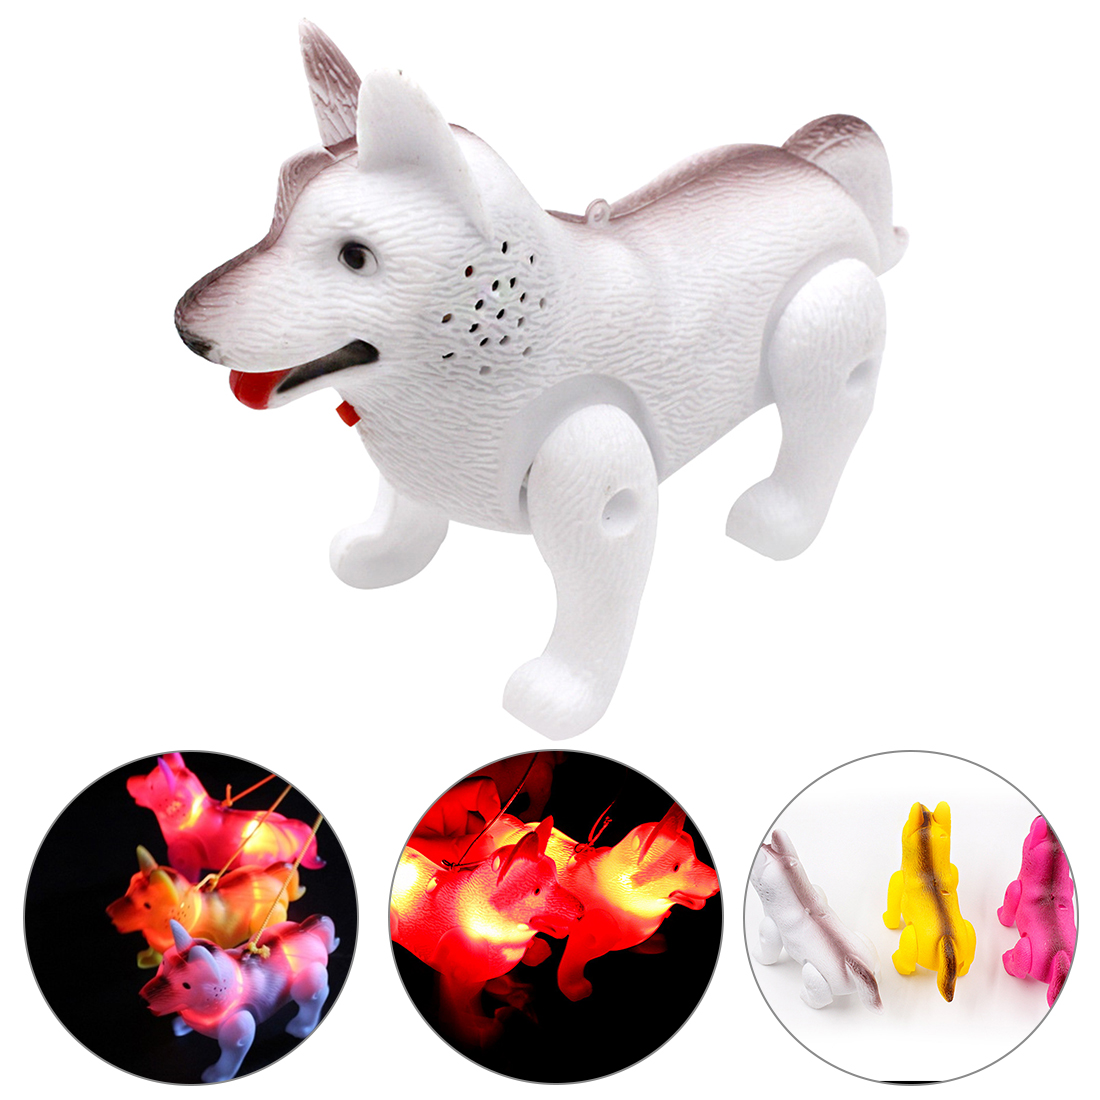 Electronic Pet Funny Robot Unicorn Children Toys LED Light Luminous Music Electric Walking Educational Toys For Kids Child Gift